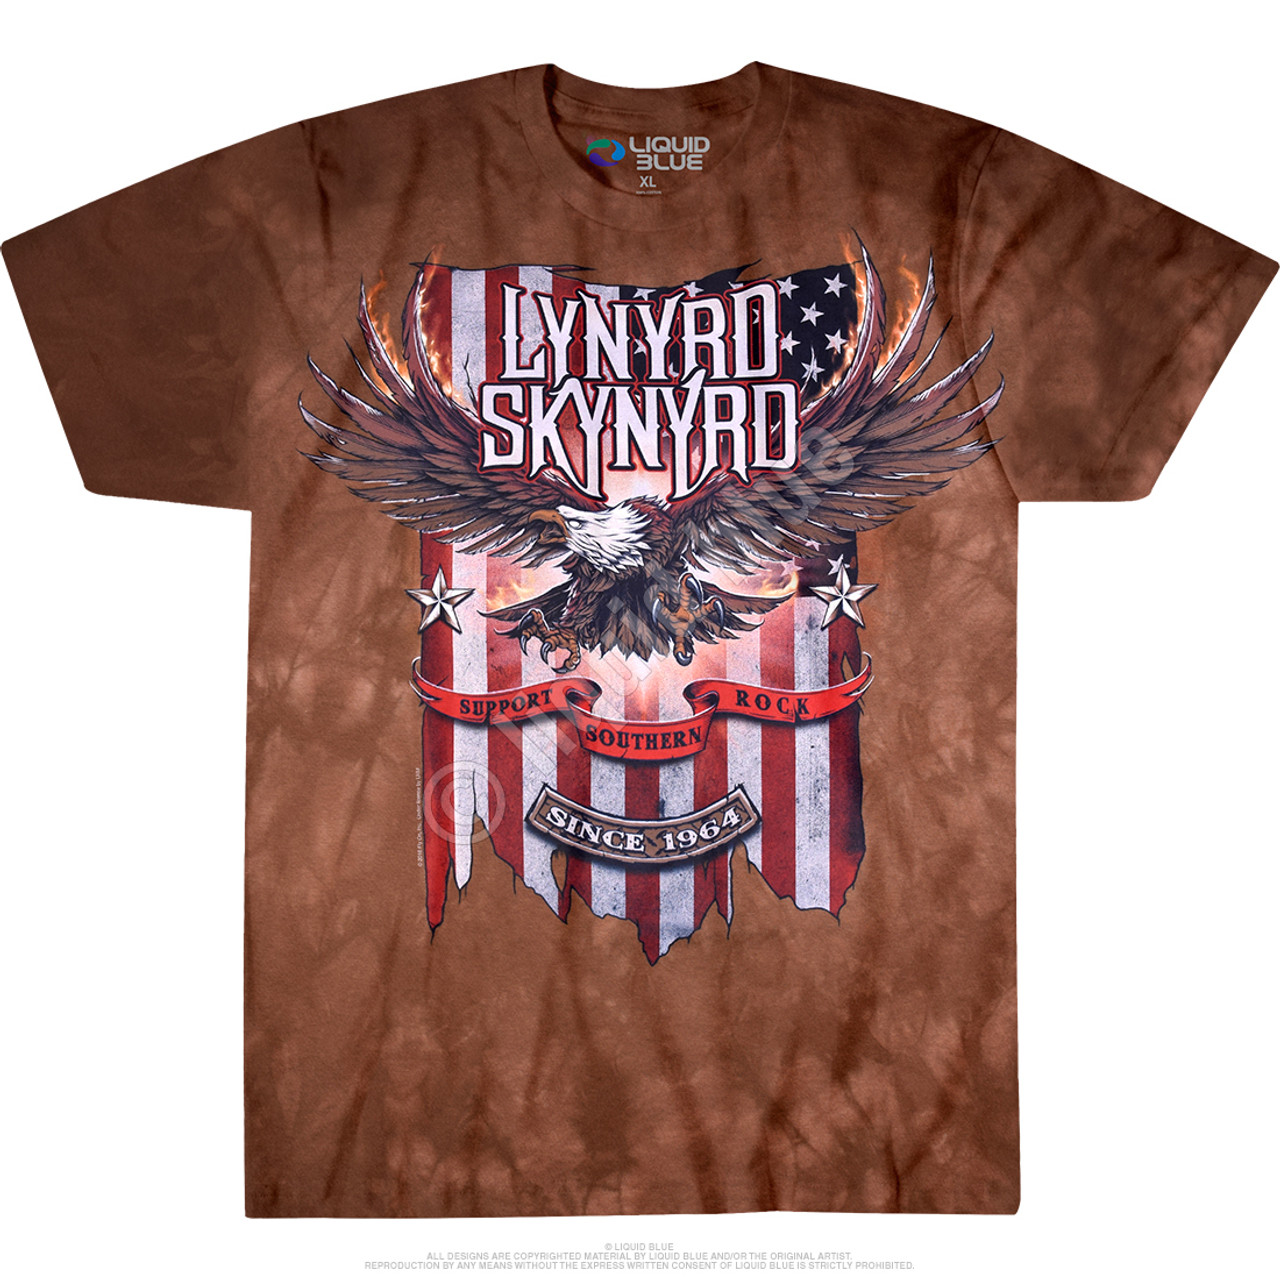 **(OFFICIALLY-LICENSED-LYNYRD-SKYNYRD/PATRIOTIC-FLAG & SKYNYRD-FLYING-FREE-BIRD/SUPPORT-SOUTHERN-ROCK,SINCE-1964/NICE-DETAILED-CUSTOM-GRAPHIC-PRINTED/PREMIUM-CONCERT-TYE-DYED-TEE-SHIRTS)**